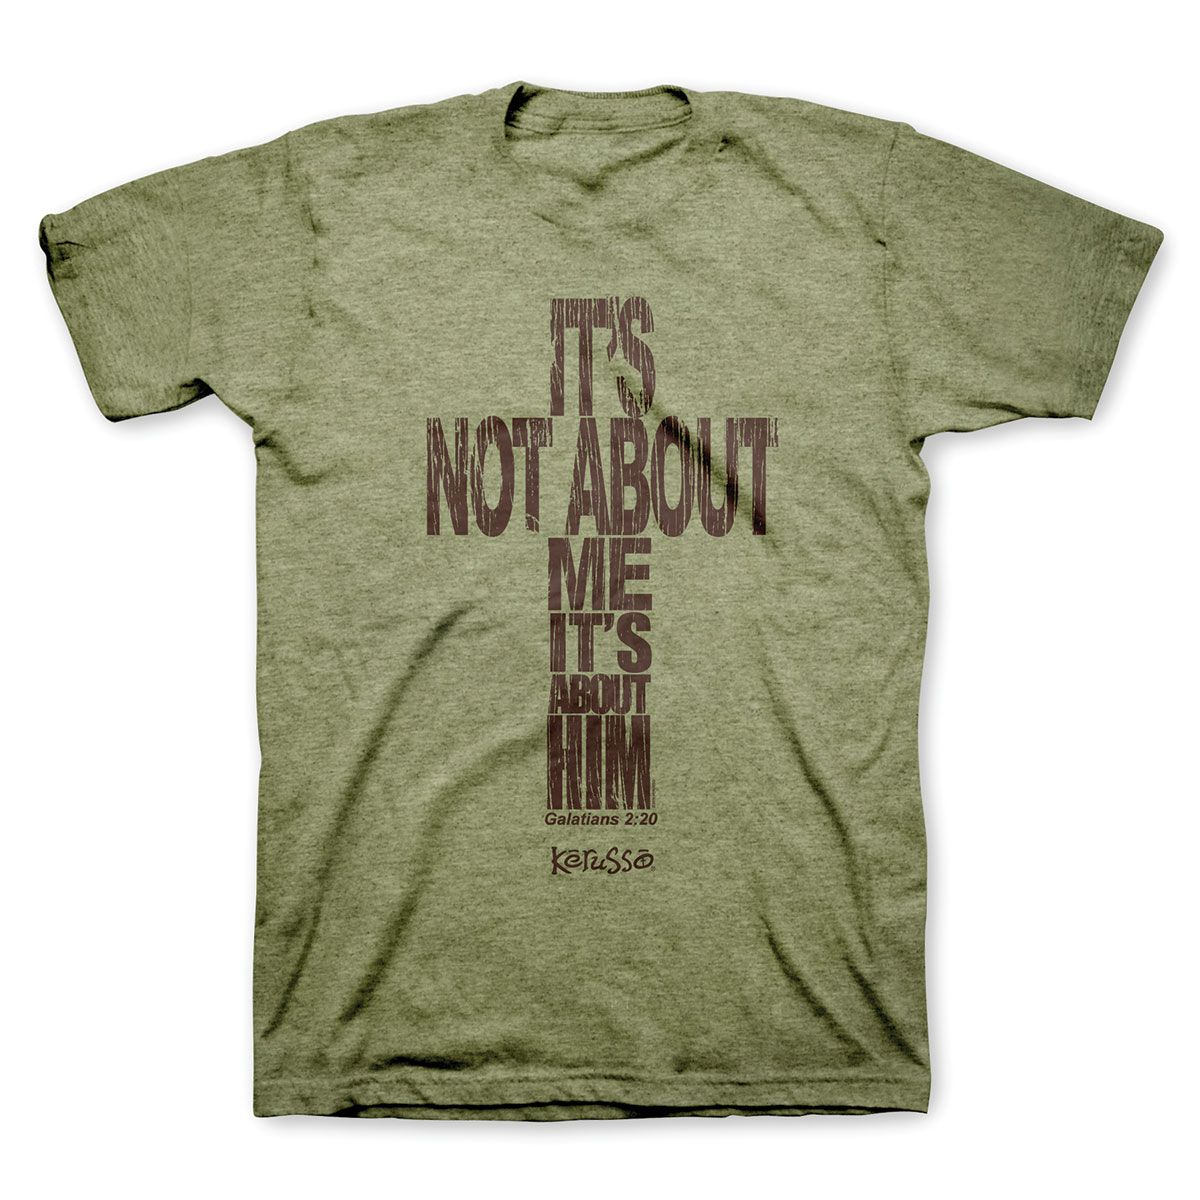 """In a culture obsessed with selfies and reality shows all about """"ME"""" you  will definitely stand out when you wear this Christian shirt that says  it loud and clear - 'IT'S NOT ABOUT ME IT'S ABOUT HIM"""" Galatians 2:20  makes it easy to understand by saying it this way: """"I have been  crucified with Christ and I no longer live but Christ lives in me."""""""